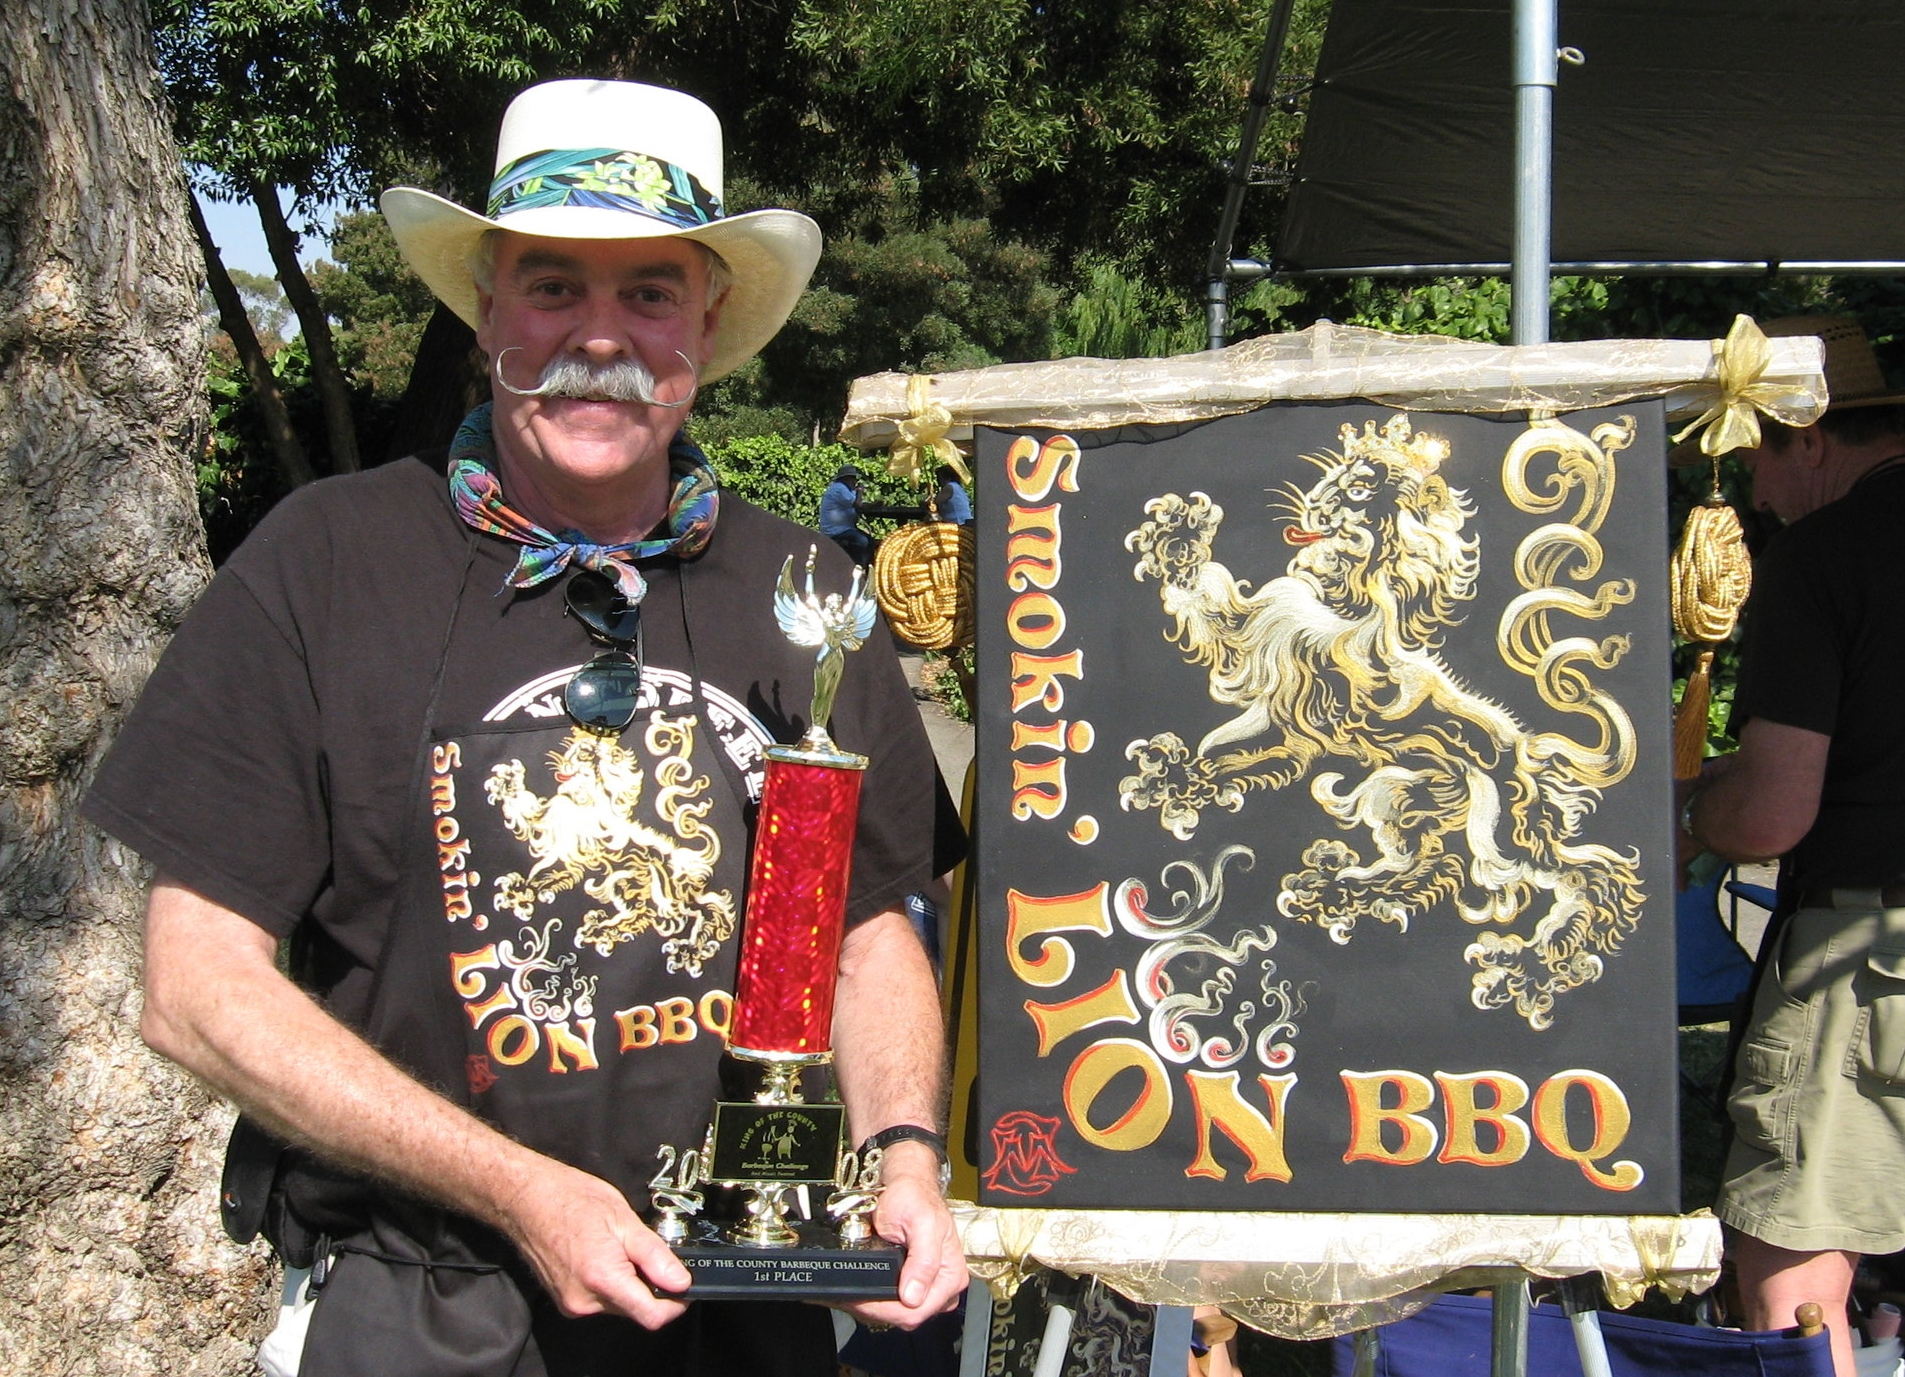 Smokin' LION BBQ Original Canvas and Chef holding 1st Place Award